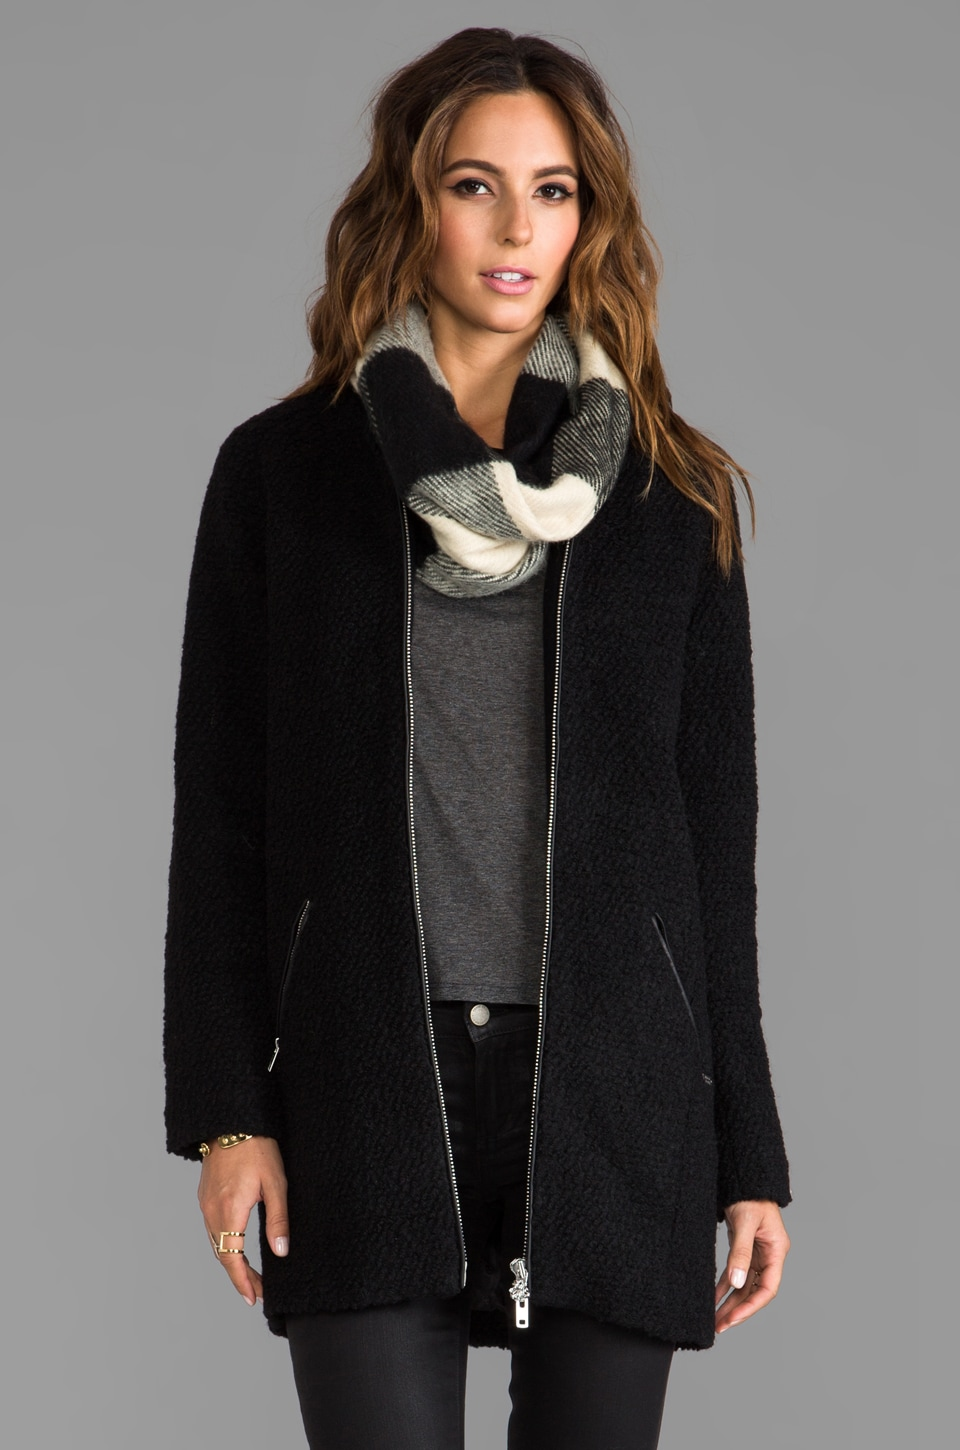 Maison Scotch Buckle Trench with Plaid Scarf in Black